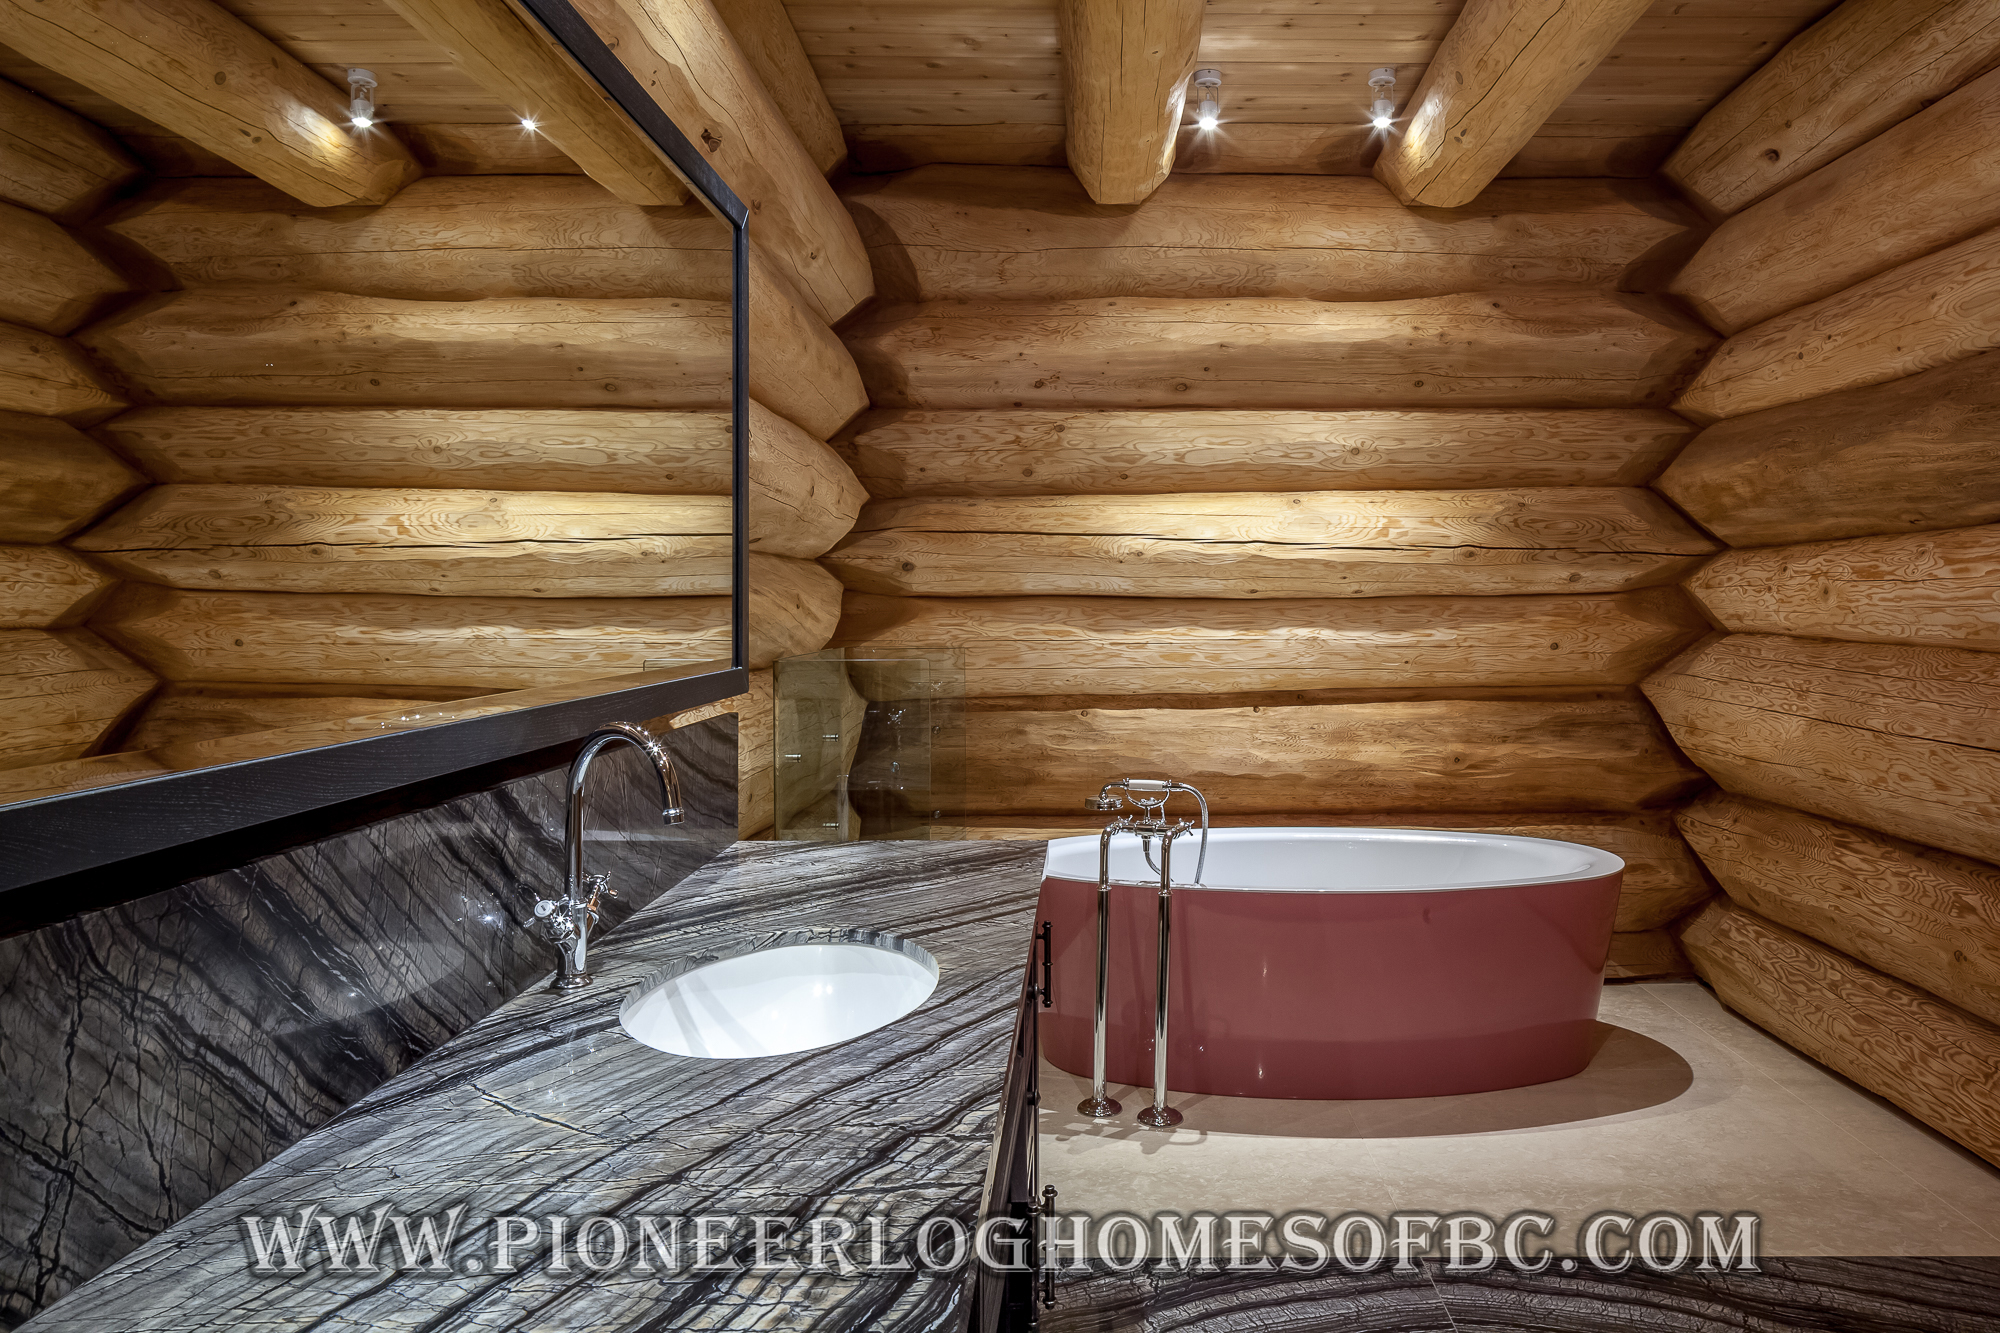 Bedrooms And Bathrooms Log Home And Cabin Interiors Pioneer Log Homes Of Bc